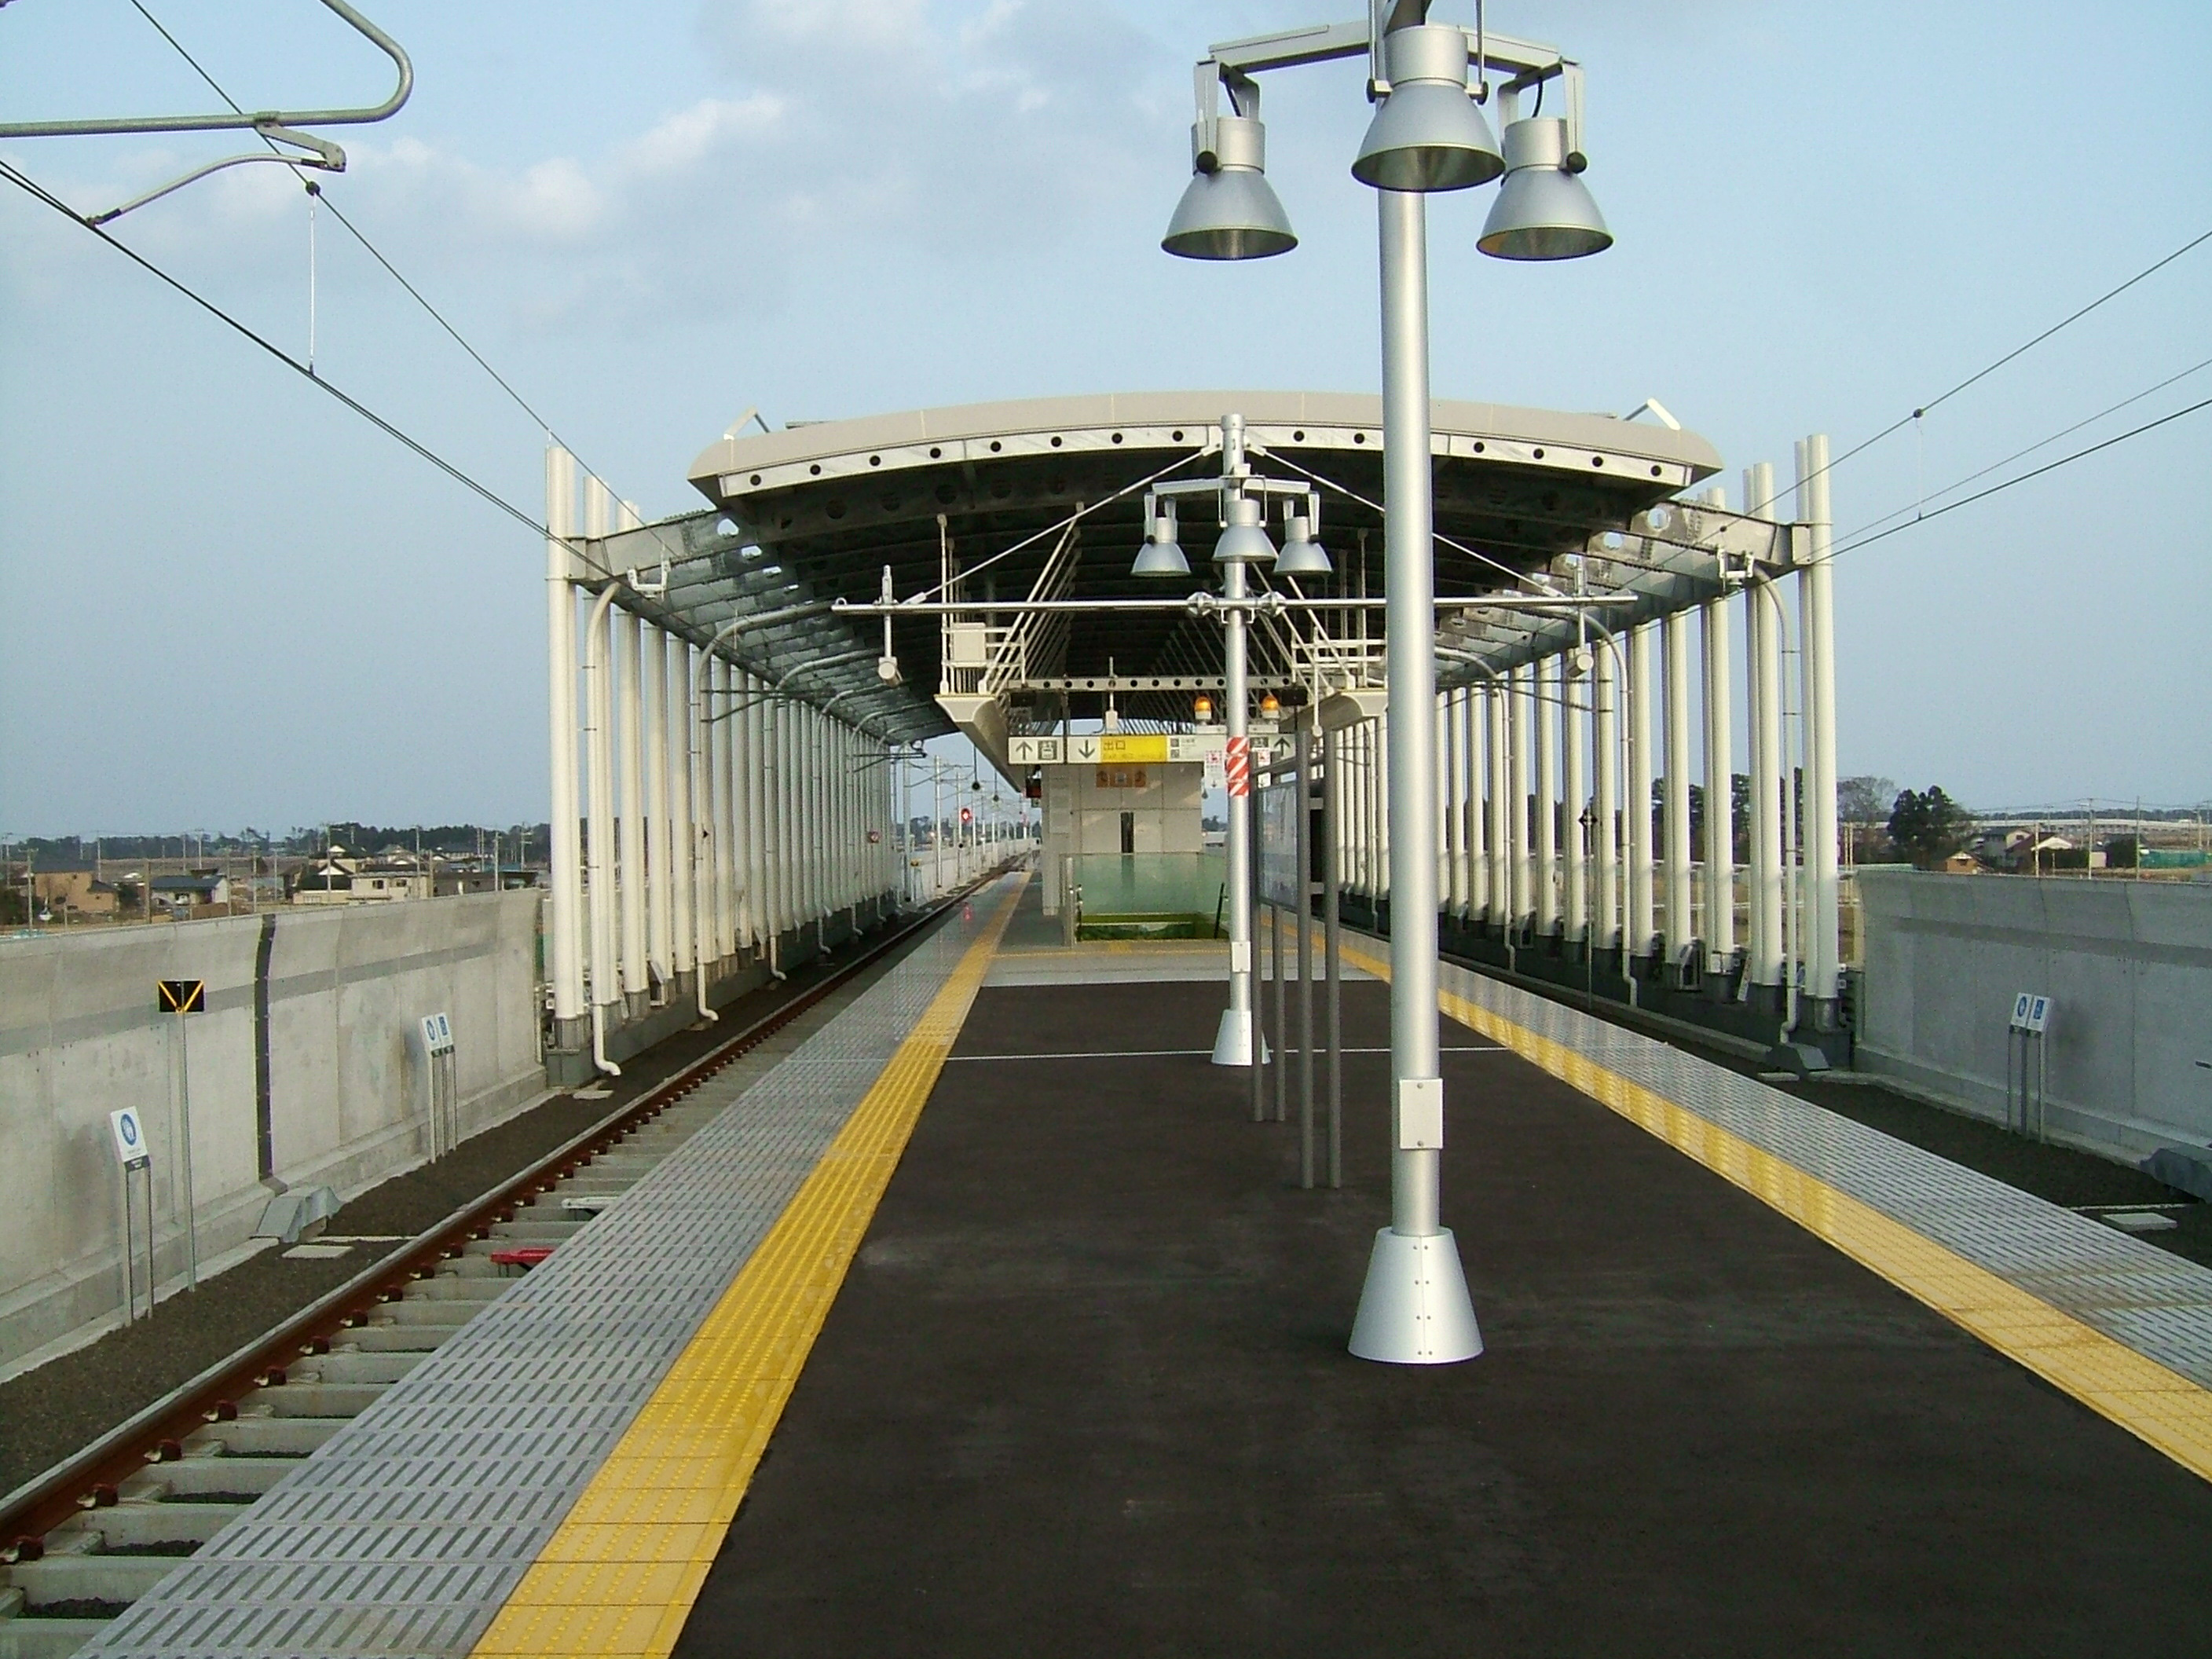 https://upload.wikimedia.org/wikipedia/commons/d/d0/Sendai-airport-transit-mitazono-platform.jpg